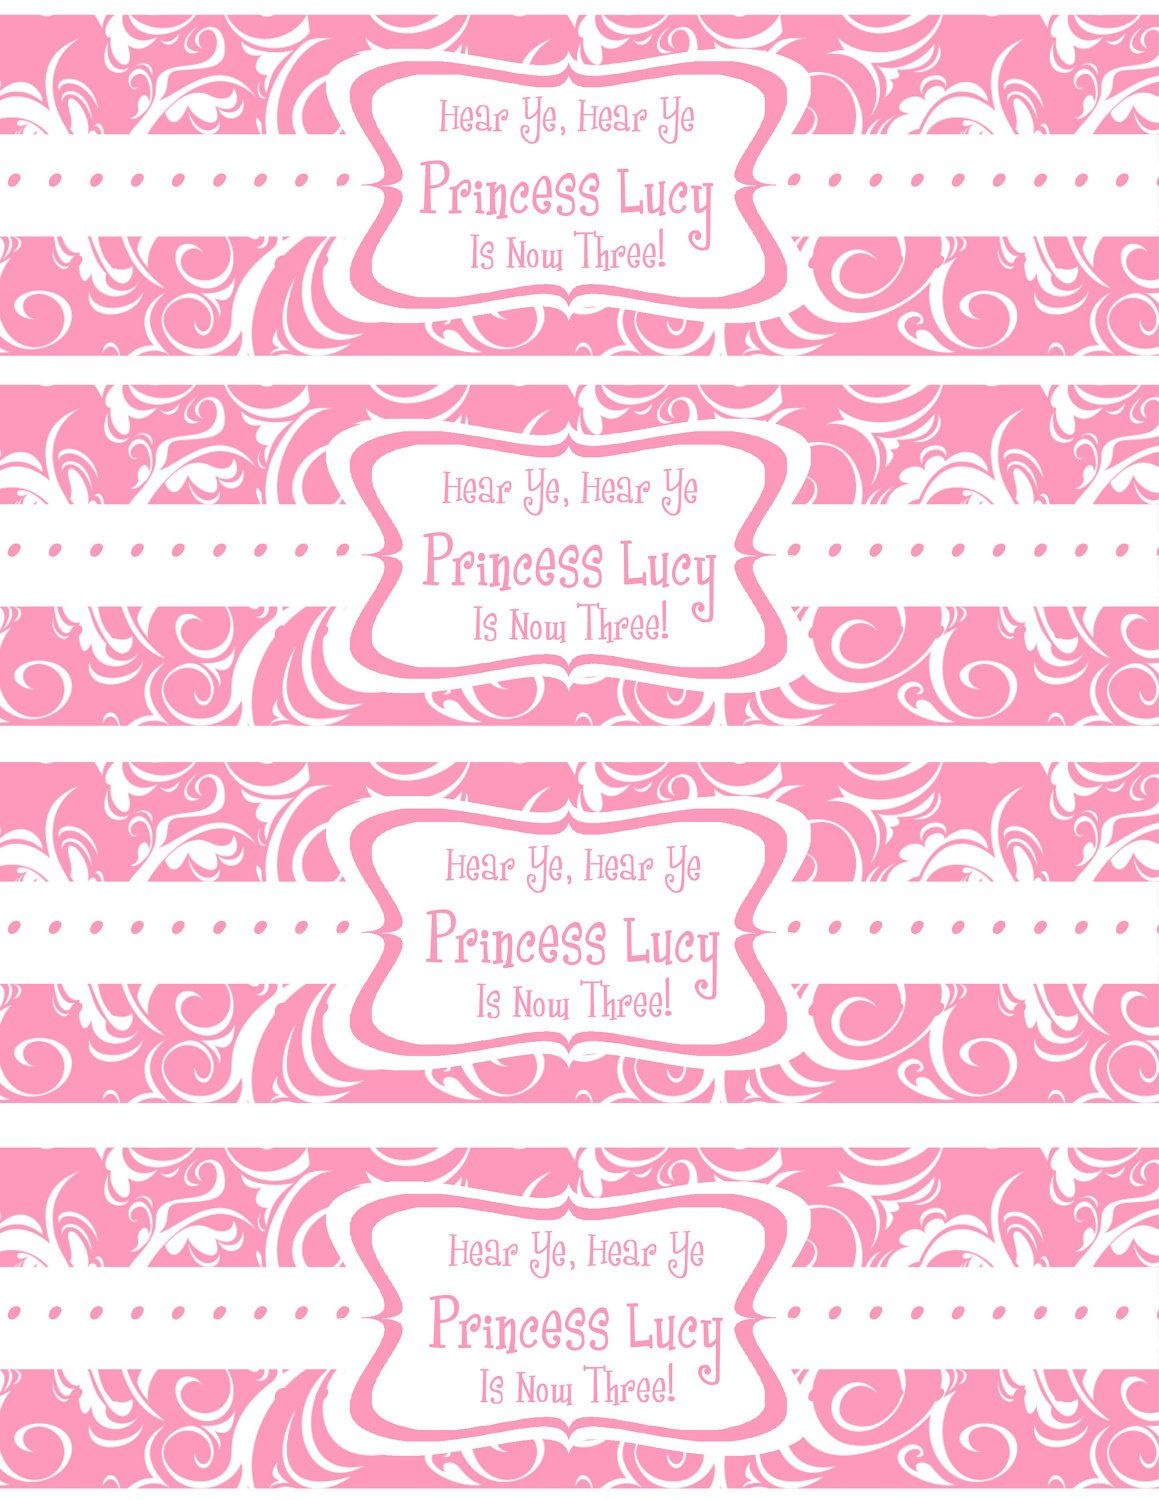 Free Printable Water Bottle Labels Template | Kreatief | Water - Free Printable Water Bottle Labels